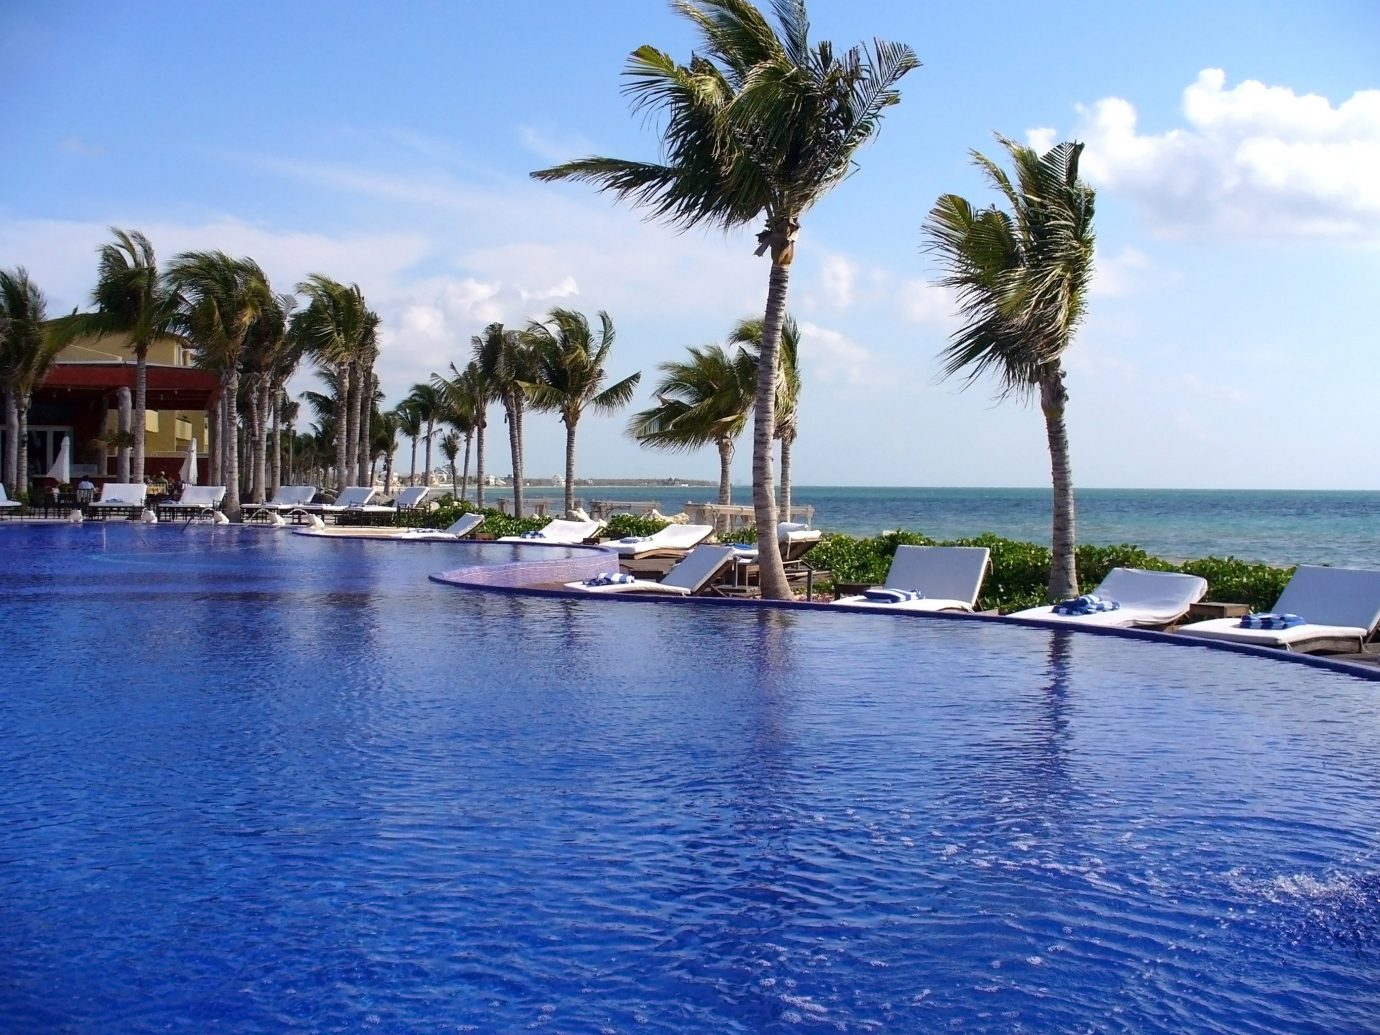 Beachfront Hotels Lounge Luxury Ocean Pool sky outdoor water tree marina palm Resort Sea vacation arecales dock bay Nature Lagoon Beach swimming pool Coast estate swimming shore lined Island surrounded